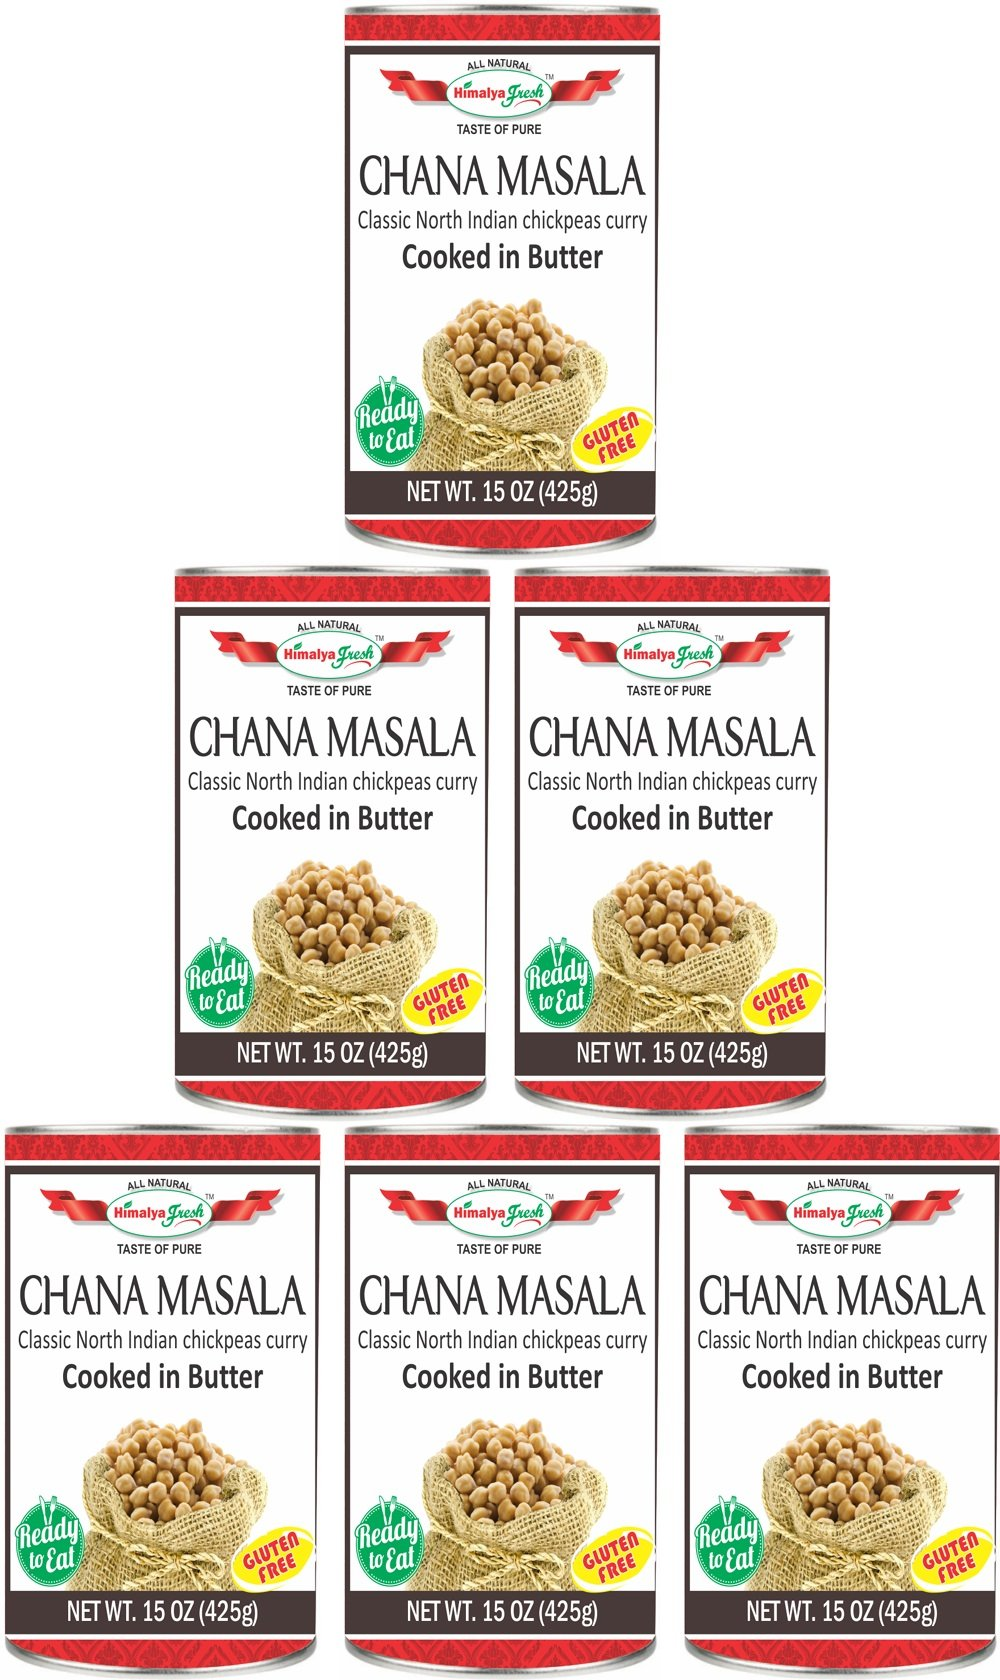 HIMALYA FRESH Authentic Indian Food Ready To Eat Canned Chana Masala, All Natural 6 Cans/15 Oz Ea. - Gluten Free Chickpeas Curry Cooked In Butter - Vegetarian, No Fillers Or Preservatives